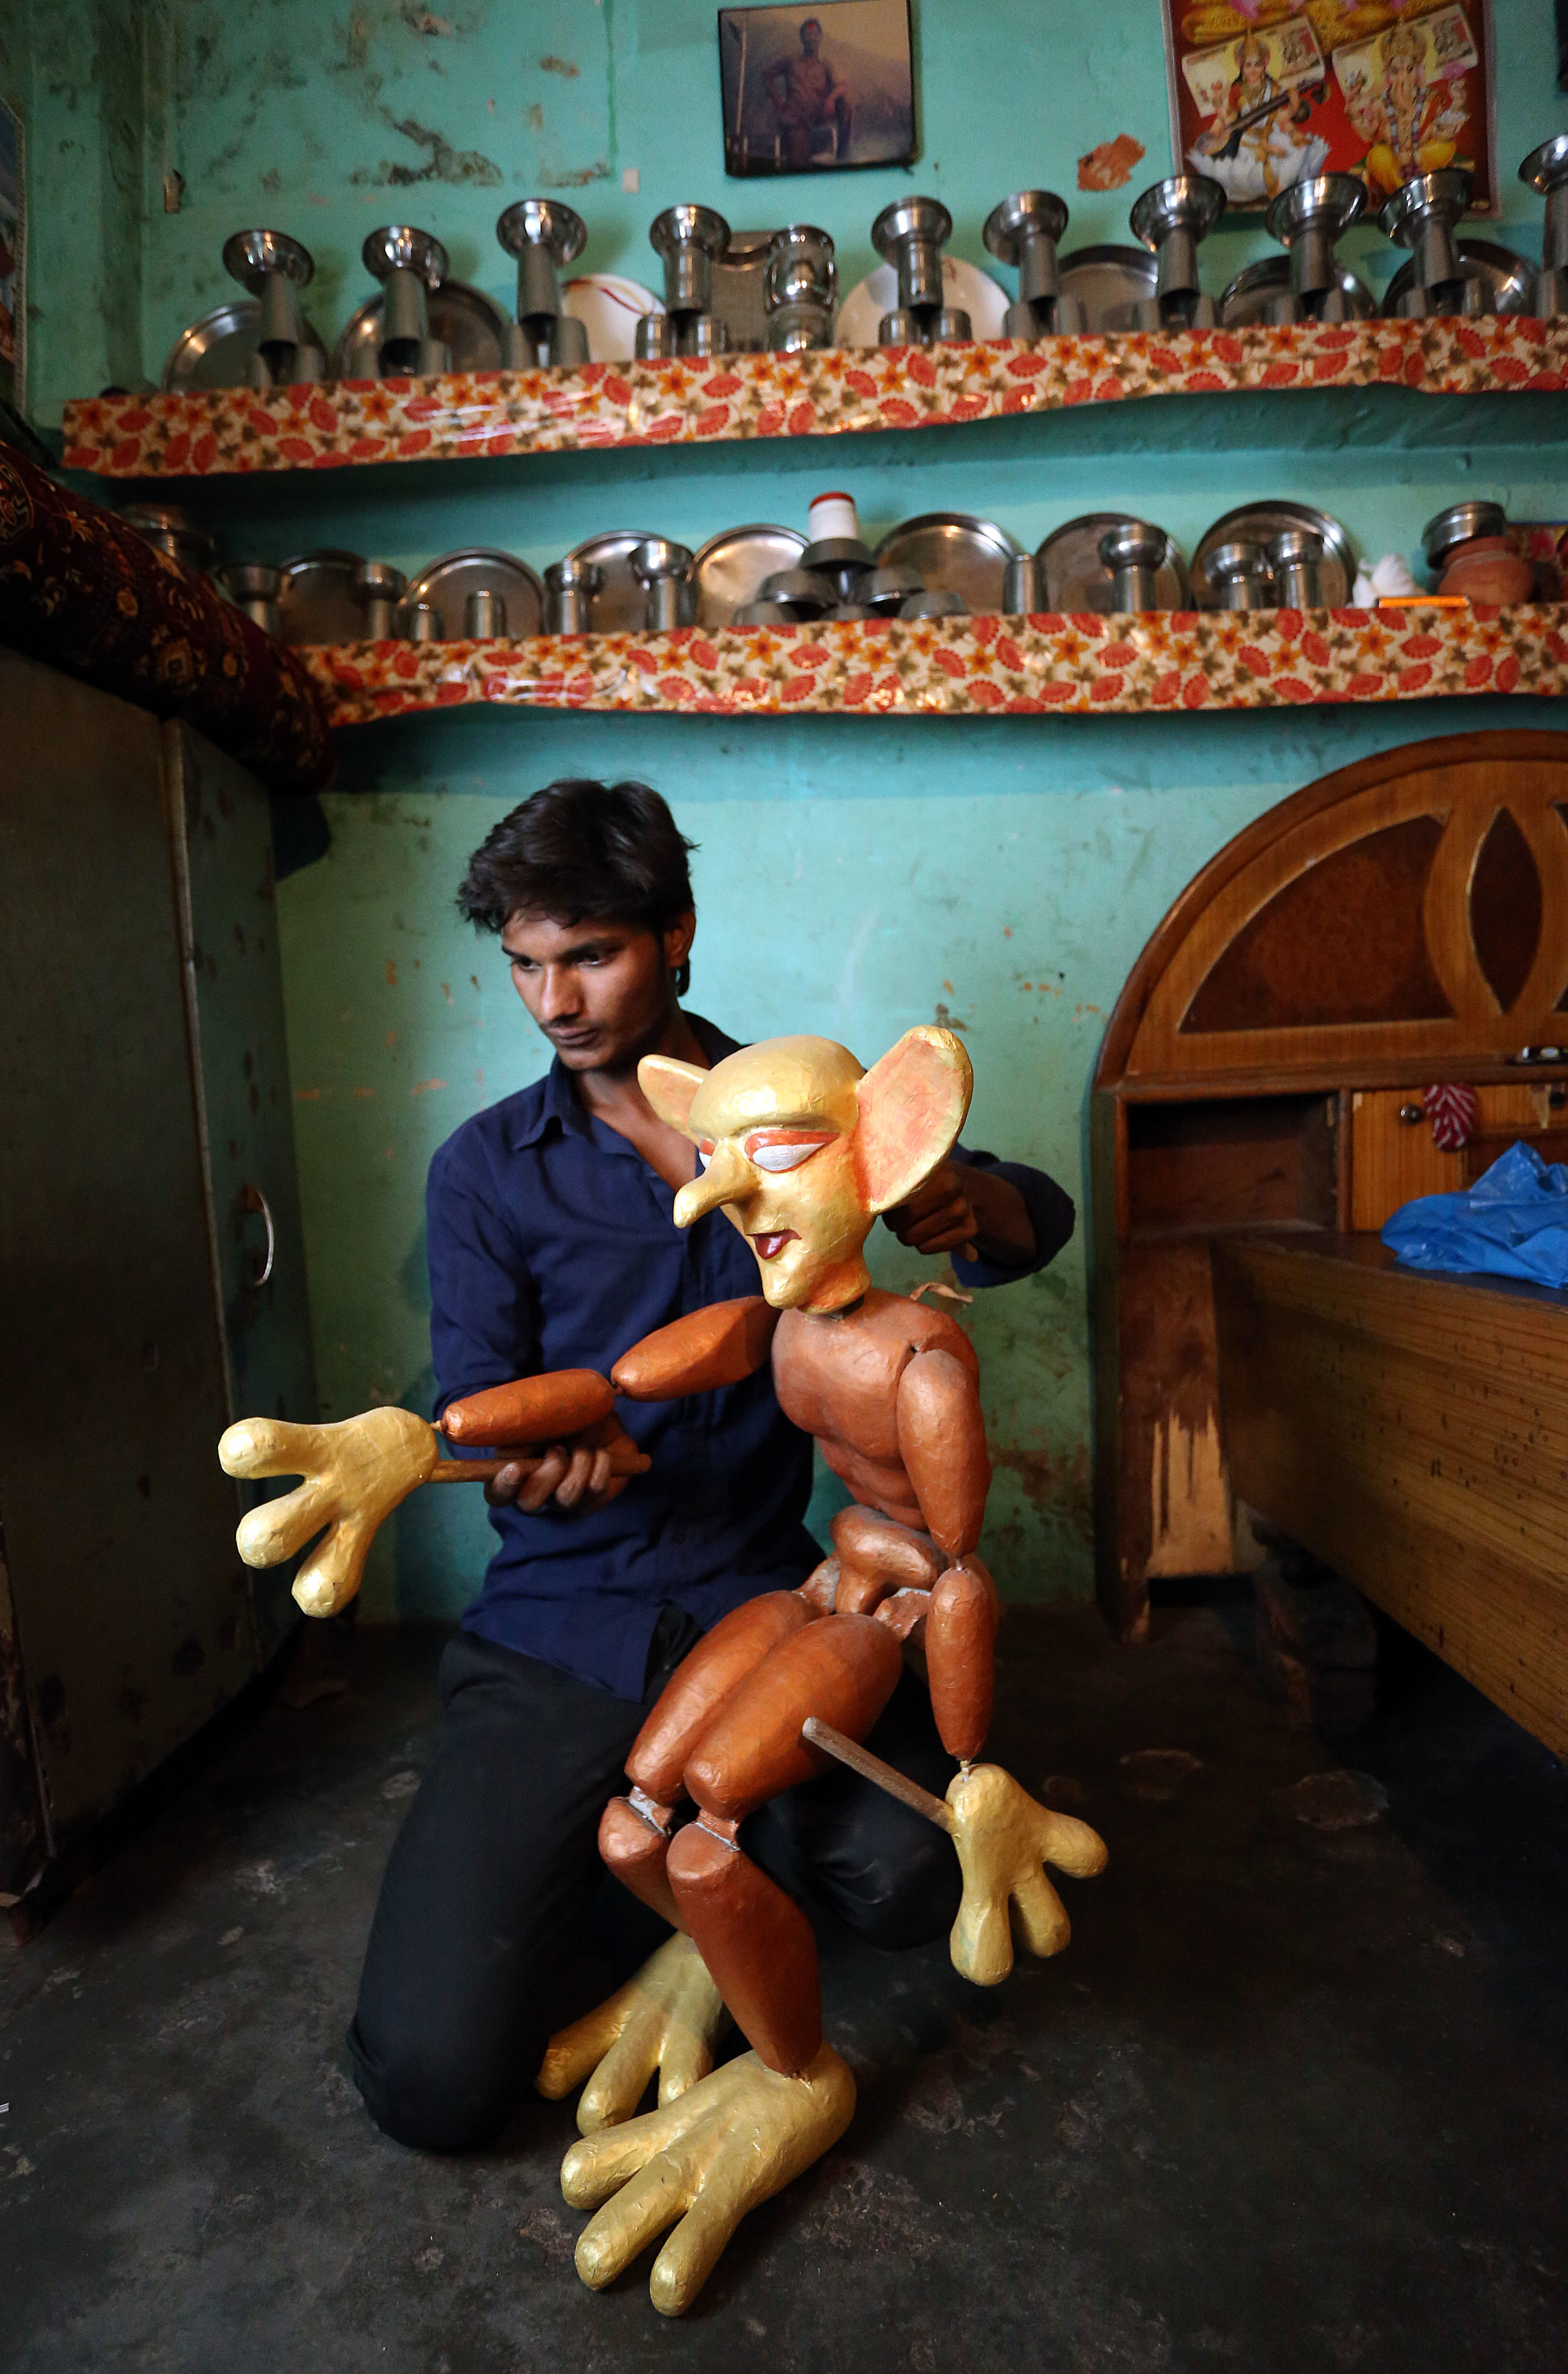 Puppeteer Sarju Bhaat practises using his puppets at his home in the Kathputli slum colony of New Delhi, India, December 7th, 2014. He is one of 40,000 people living in the slum, which is popularly known for being the worlds largest colony of street performers, including magicians, snake charmers, acrobats, singers, dancers, actors, traditional healers and musicians and puppeteers. Their livelihood is under threat however as the Delhi government has obtained contracts to demolish the colony to make way for developers to build high-rise apartments.